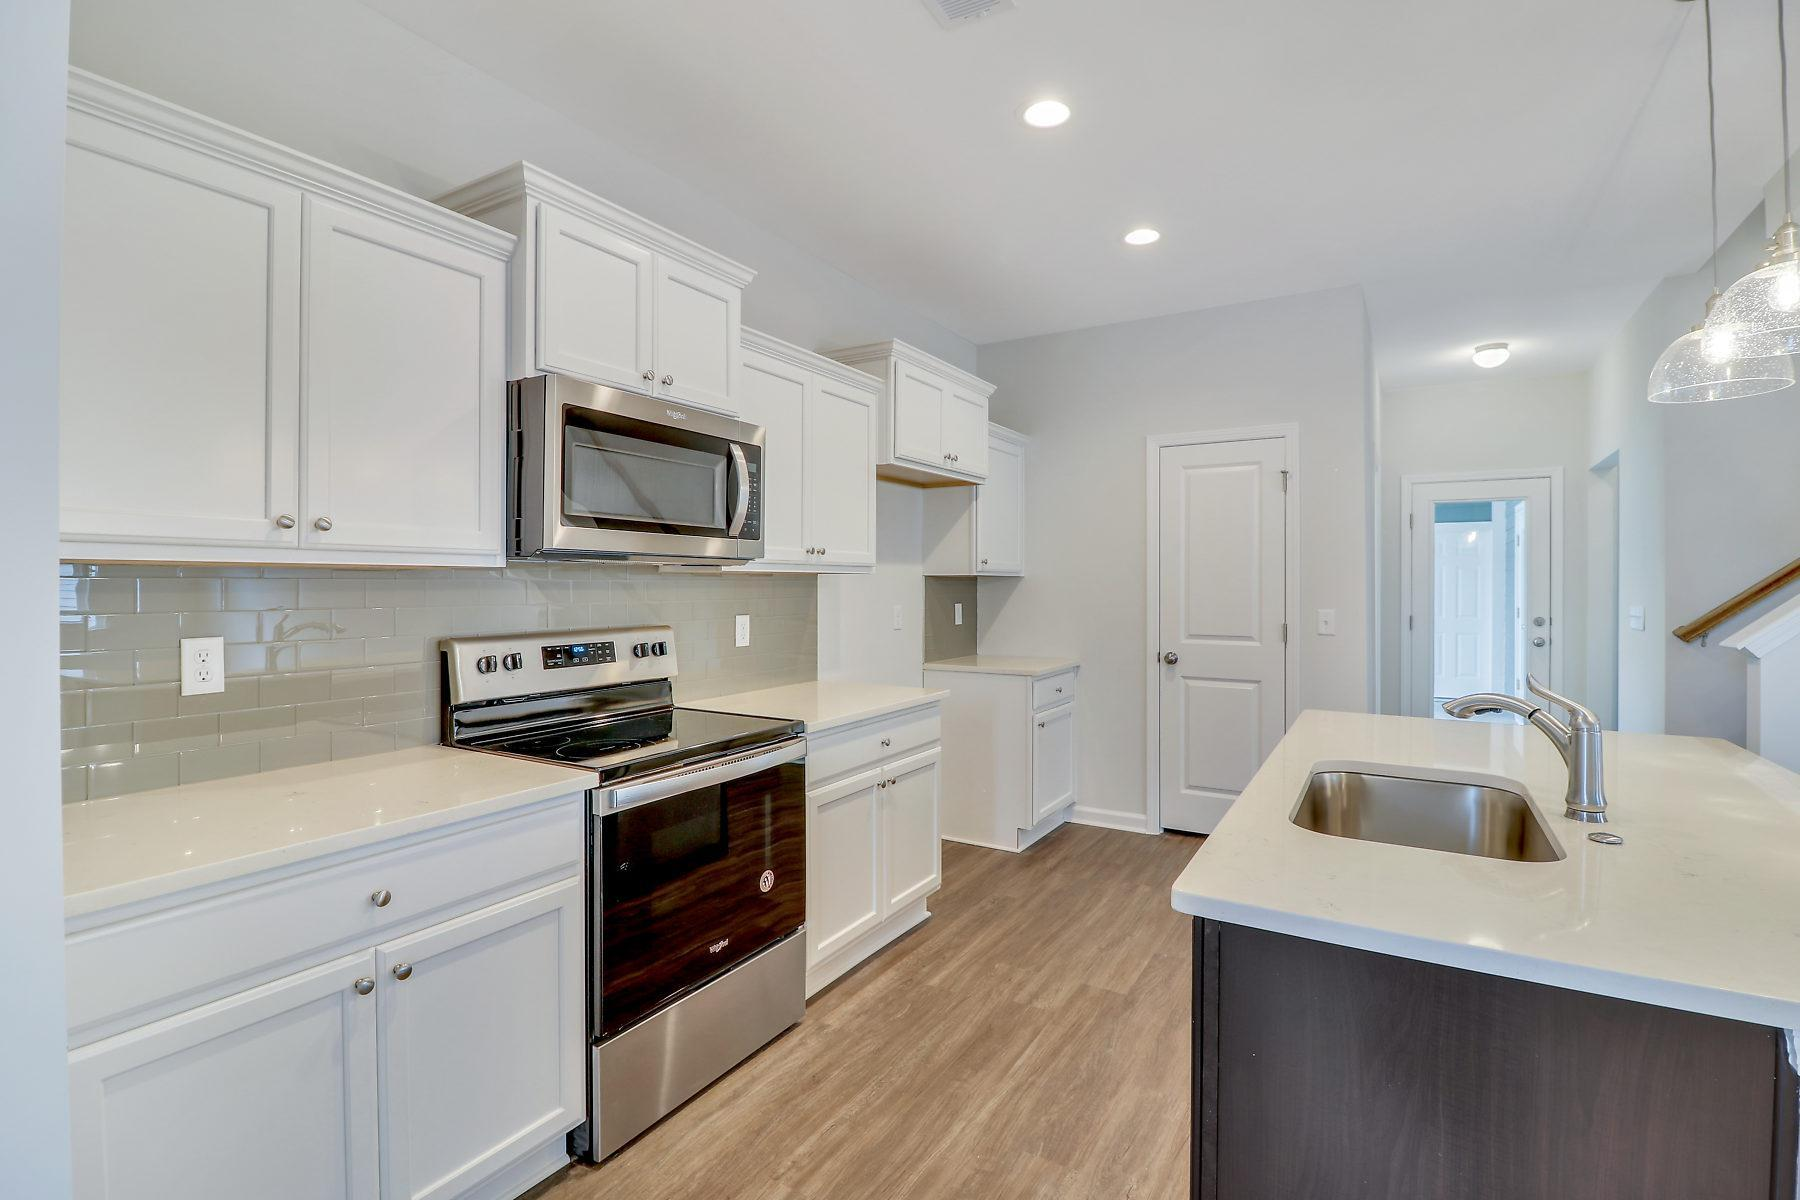 Kitchen featured in The Troup By Village Park Homes in Hilton Head, SC